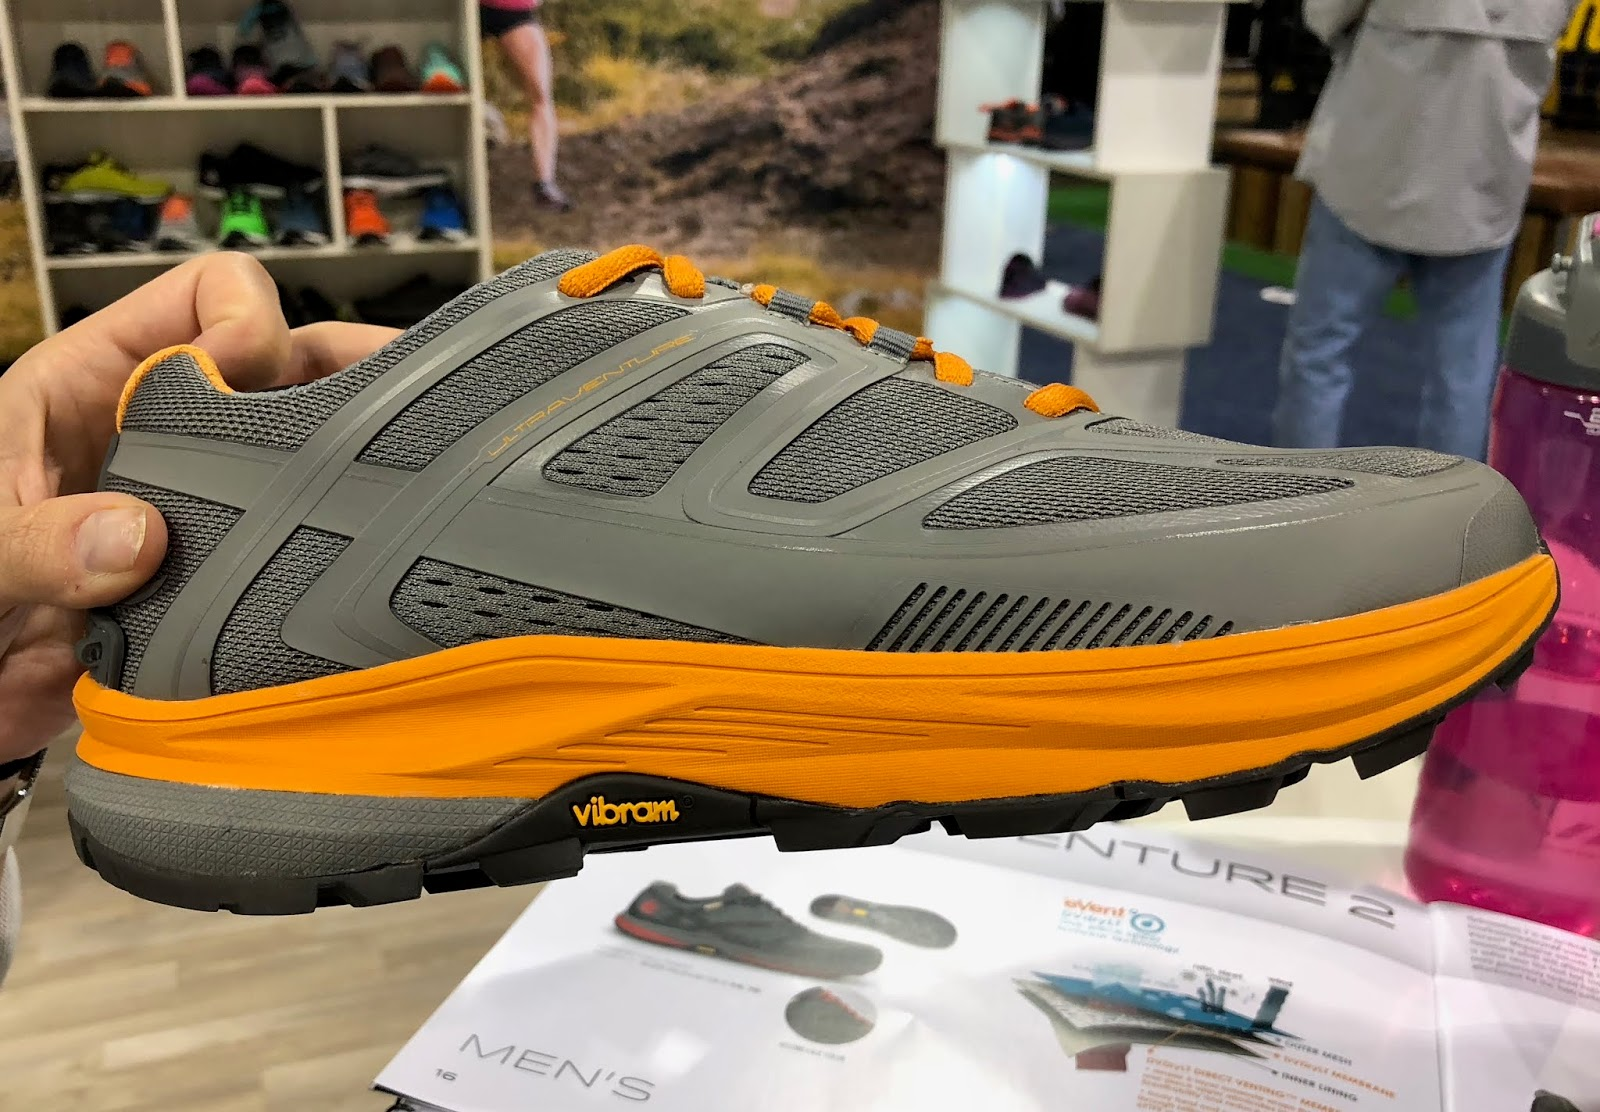 hot sale online d0b14 b996a The new Ultraventure can be thought of as the trail cousin of the Ultrafly,  Topos most cushioned road shoe. They share similar midsole stack heights  and a ...